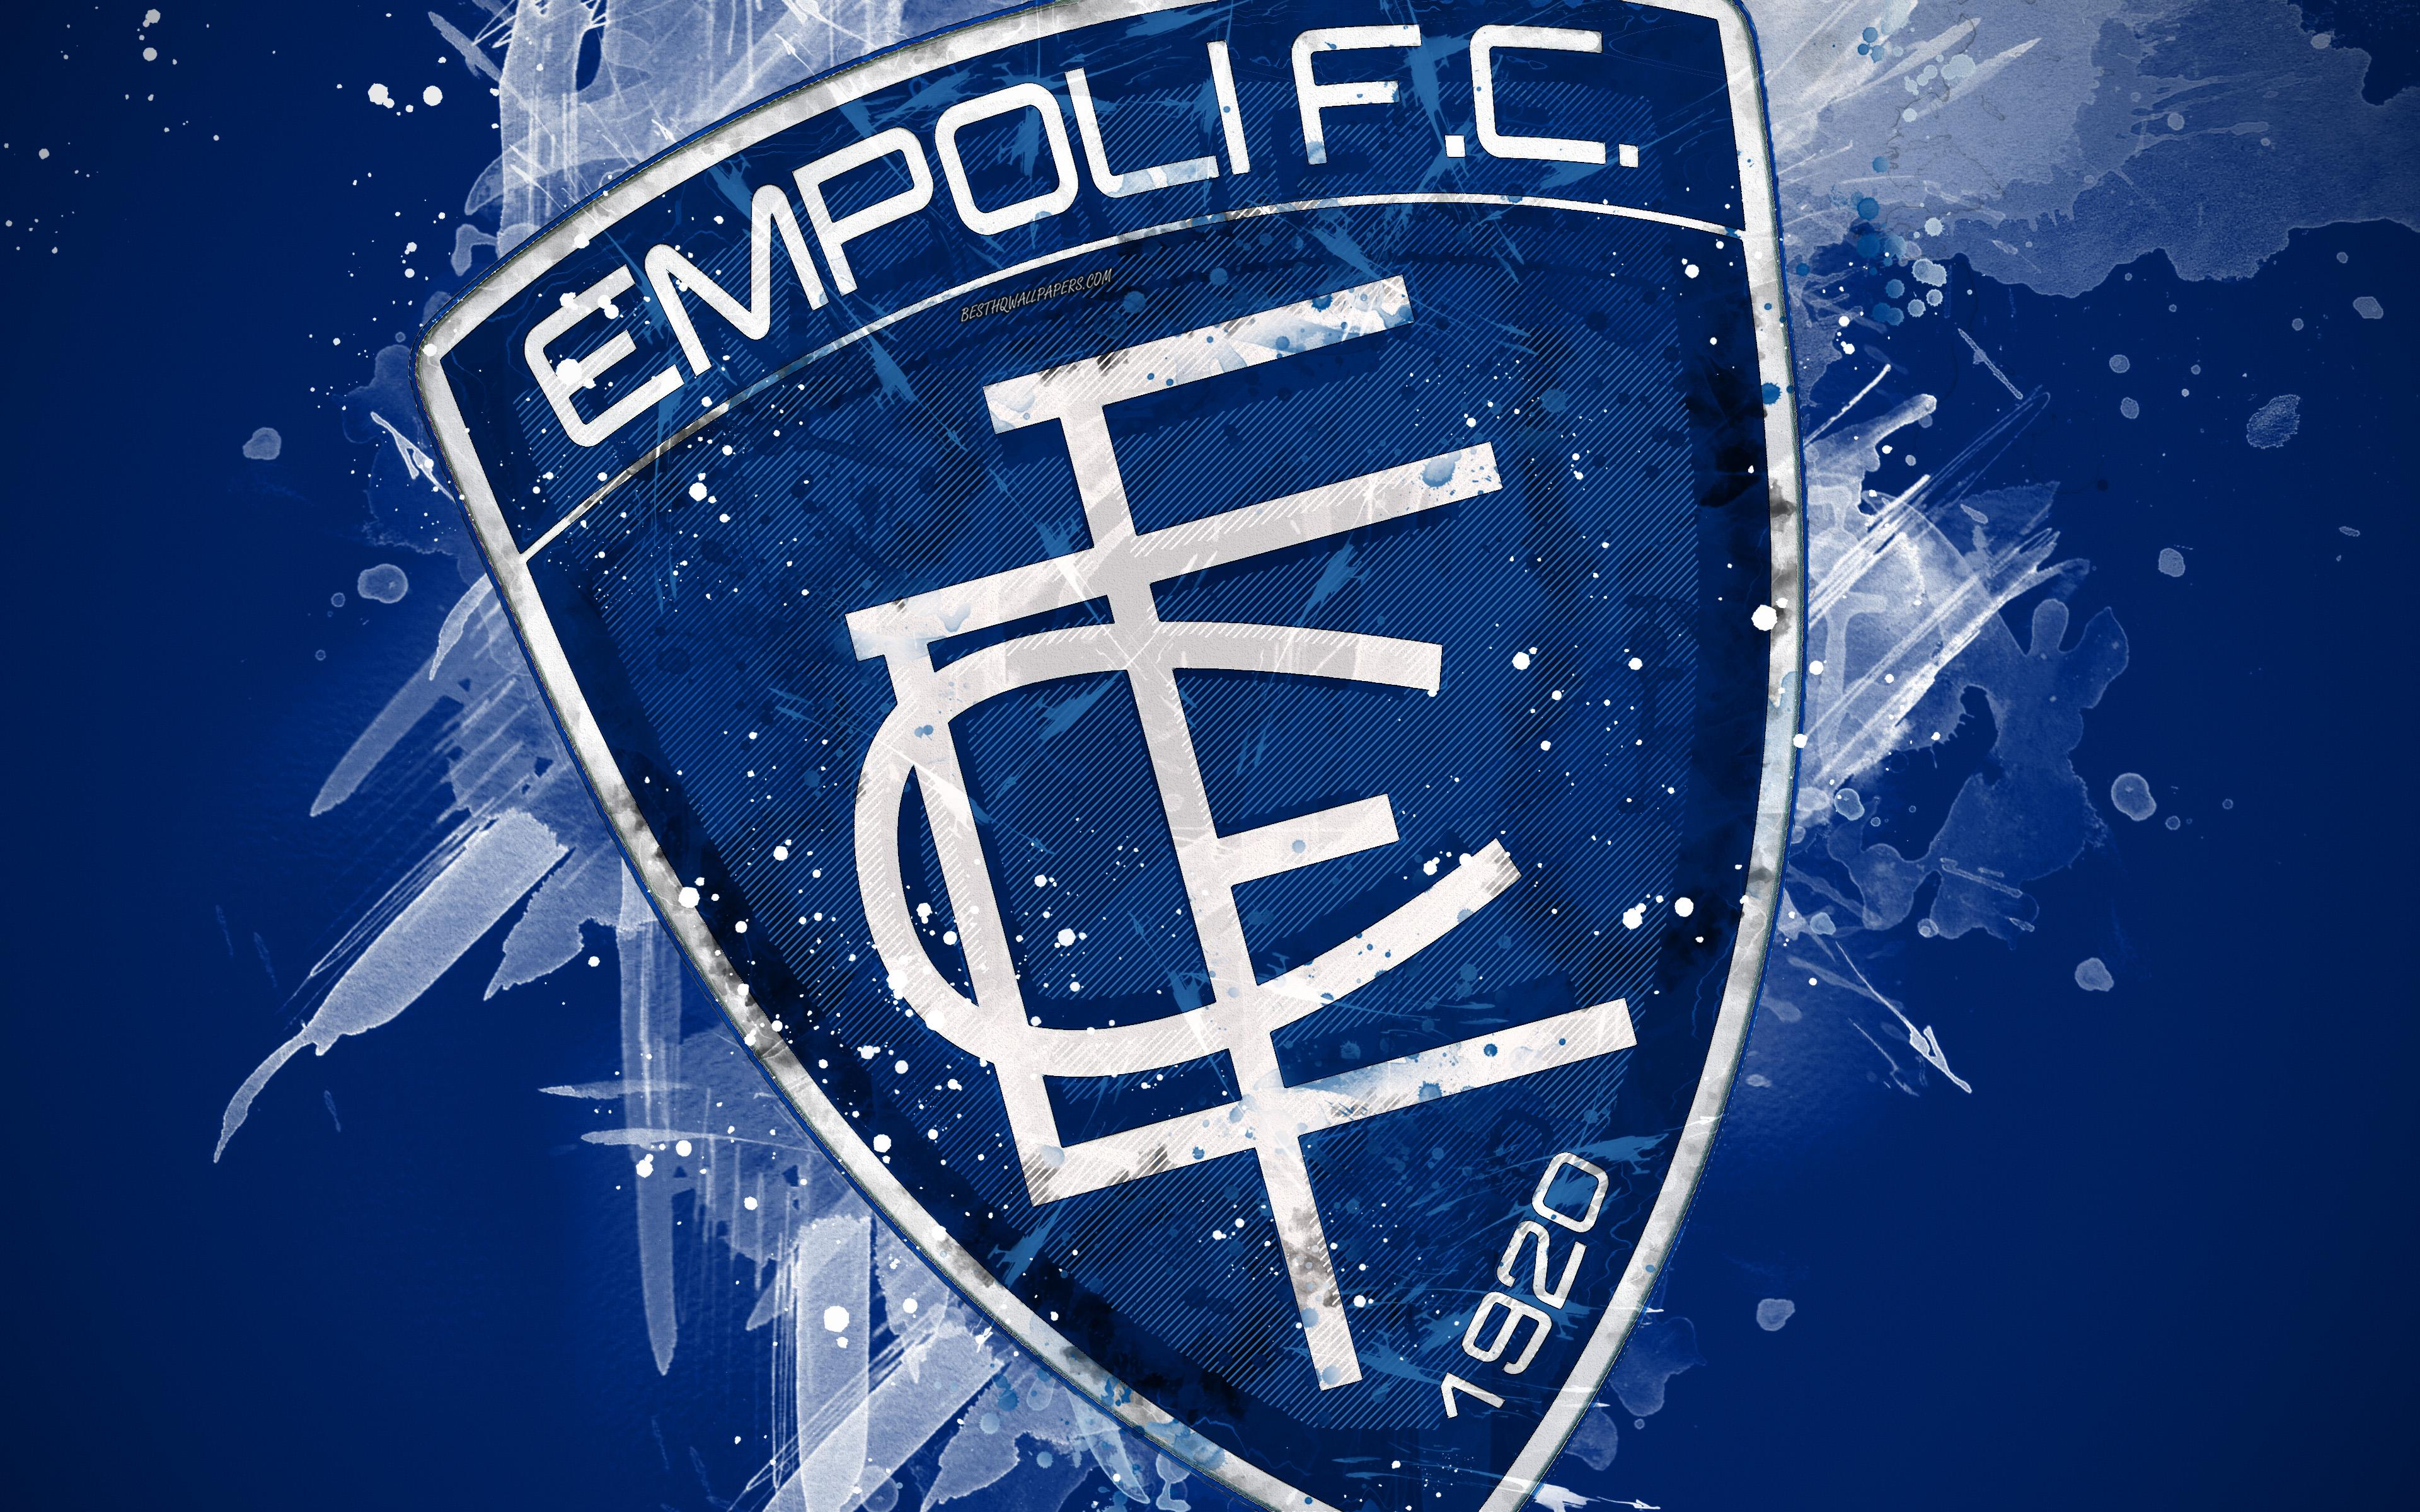 Download wallpapers Empoli FC, 4k, paint art, creative, Italian